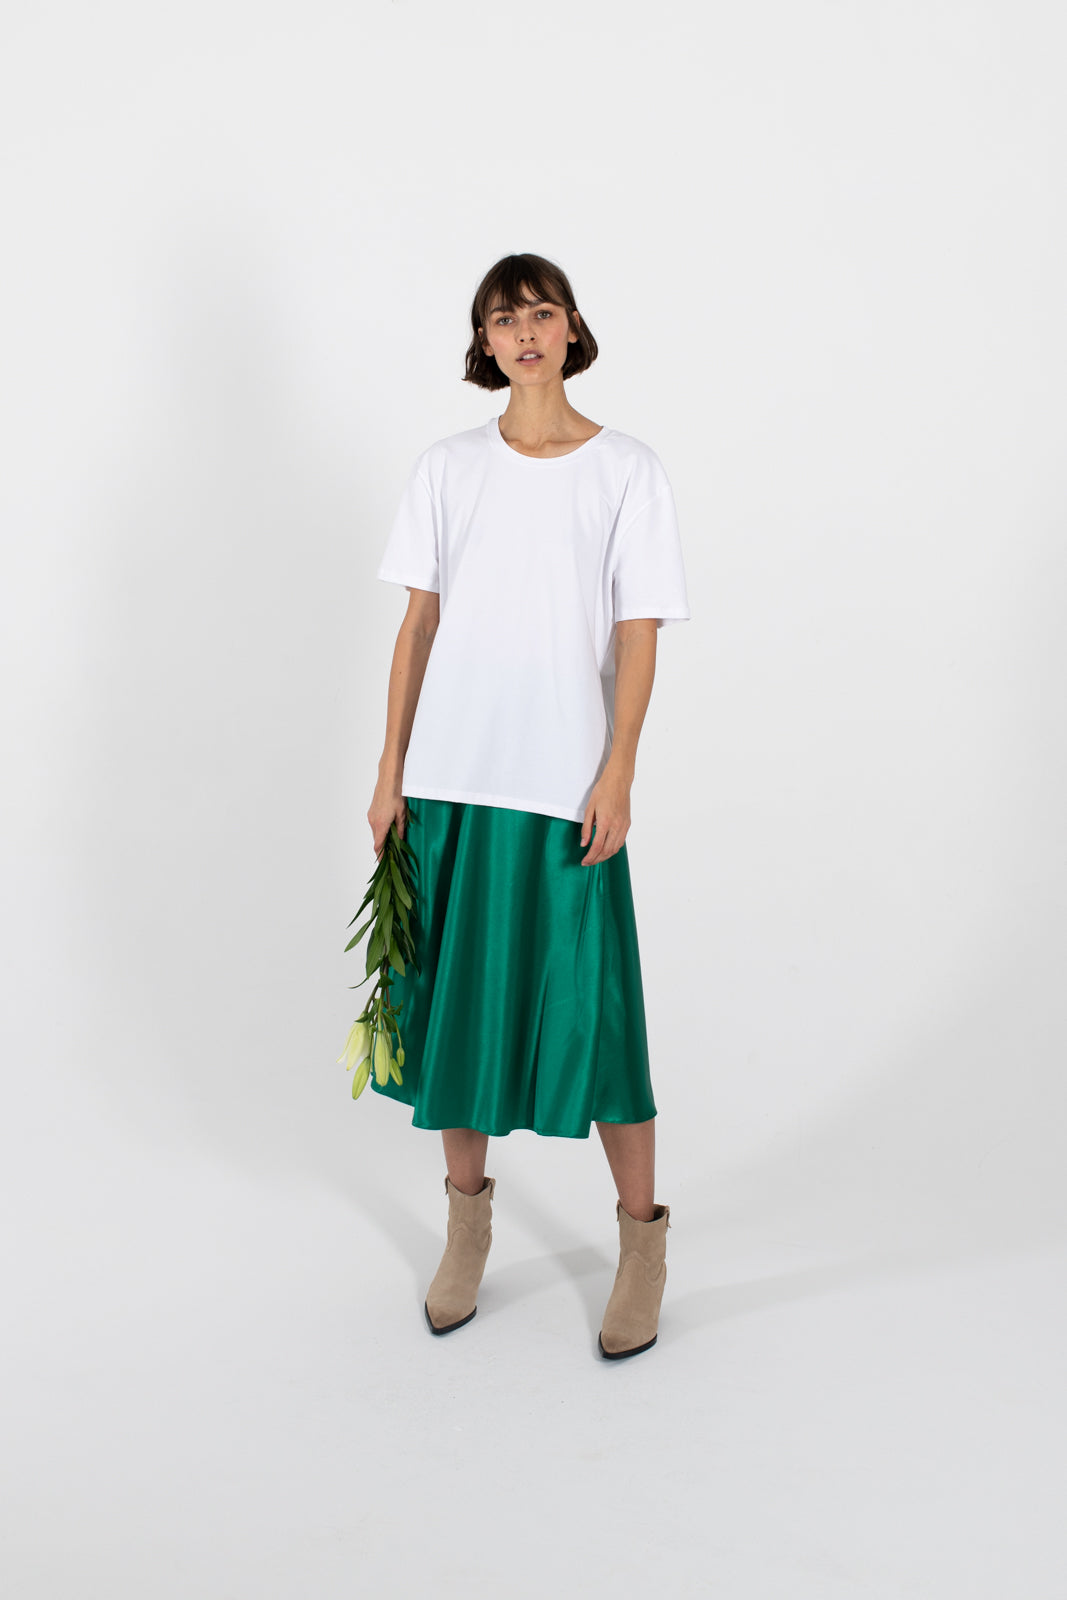 le-SLAP-White-logo-tshirt-summer-cotton-clothing-oversize.jpg